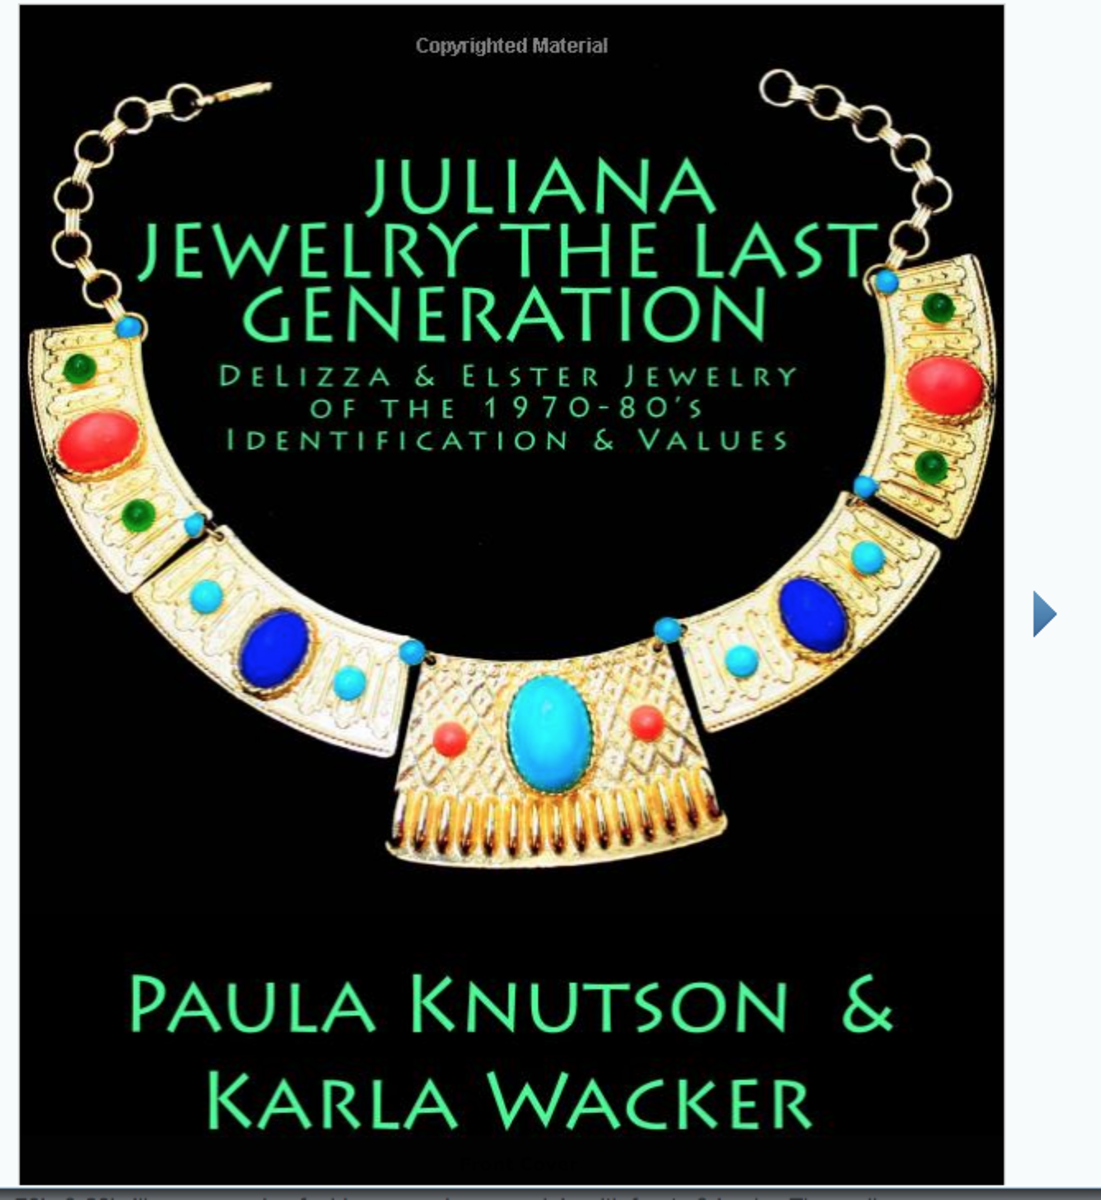 Juliana Jewelry: The Last Generation by Paula Knutson and Karla Wacker.